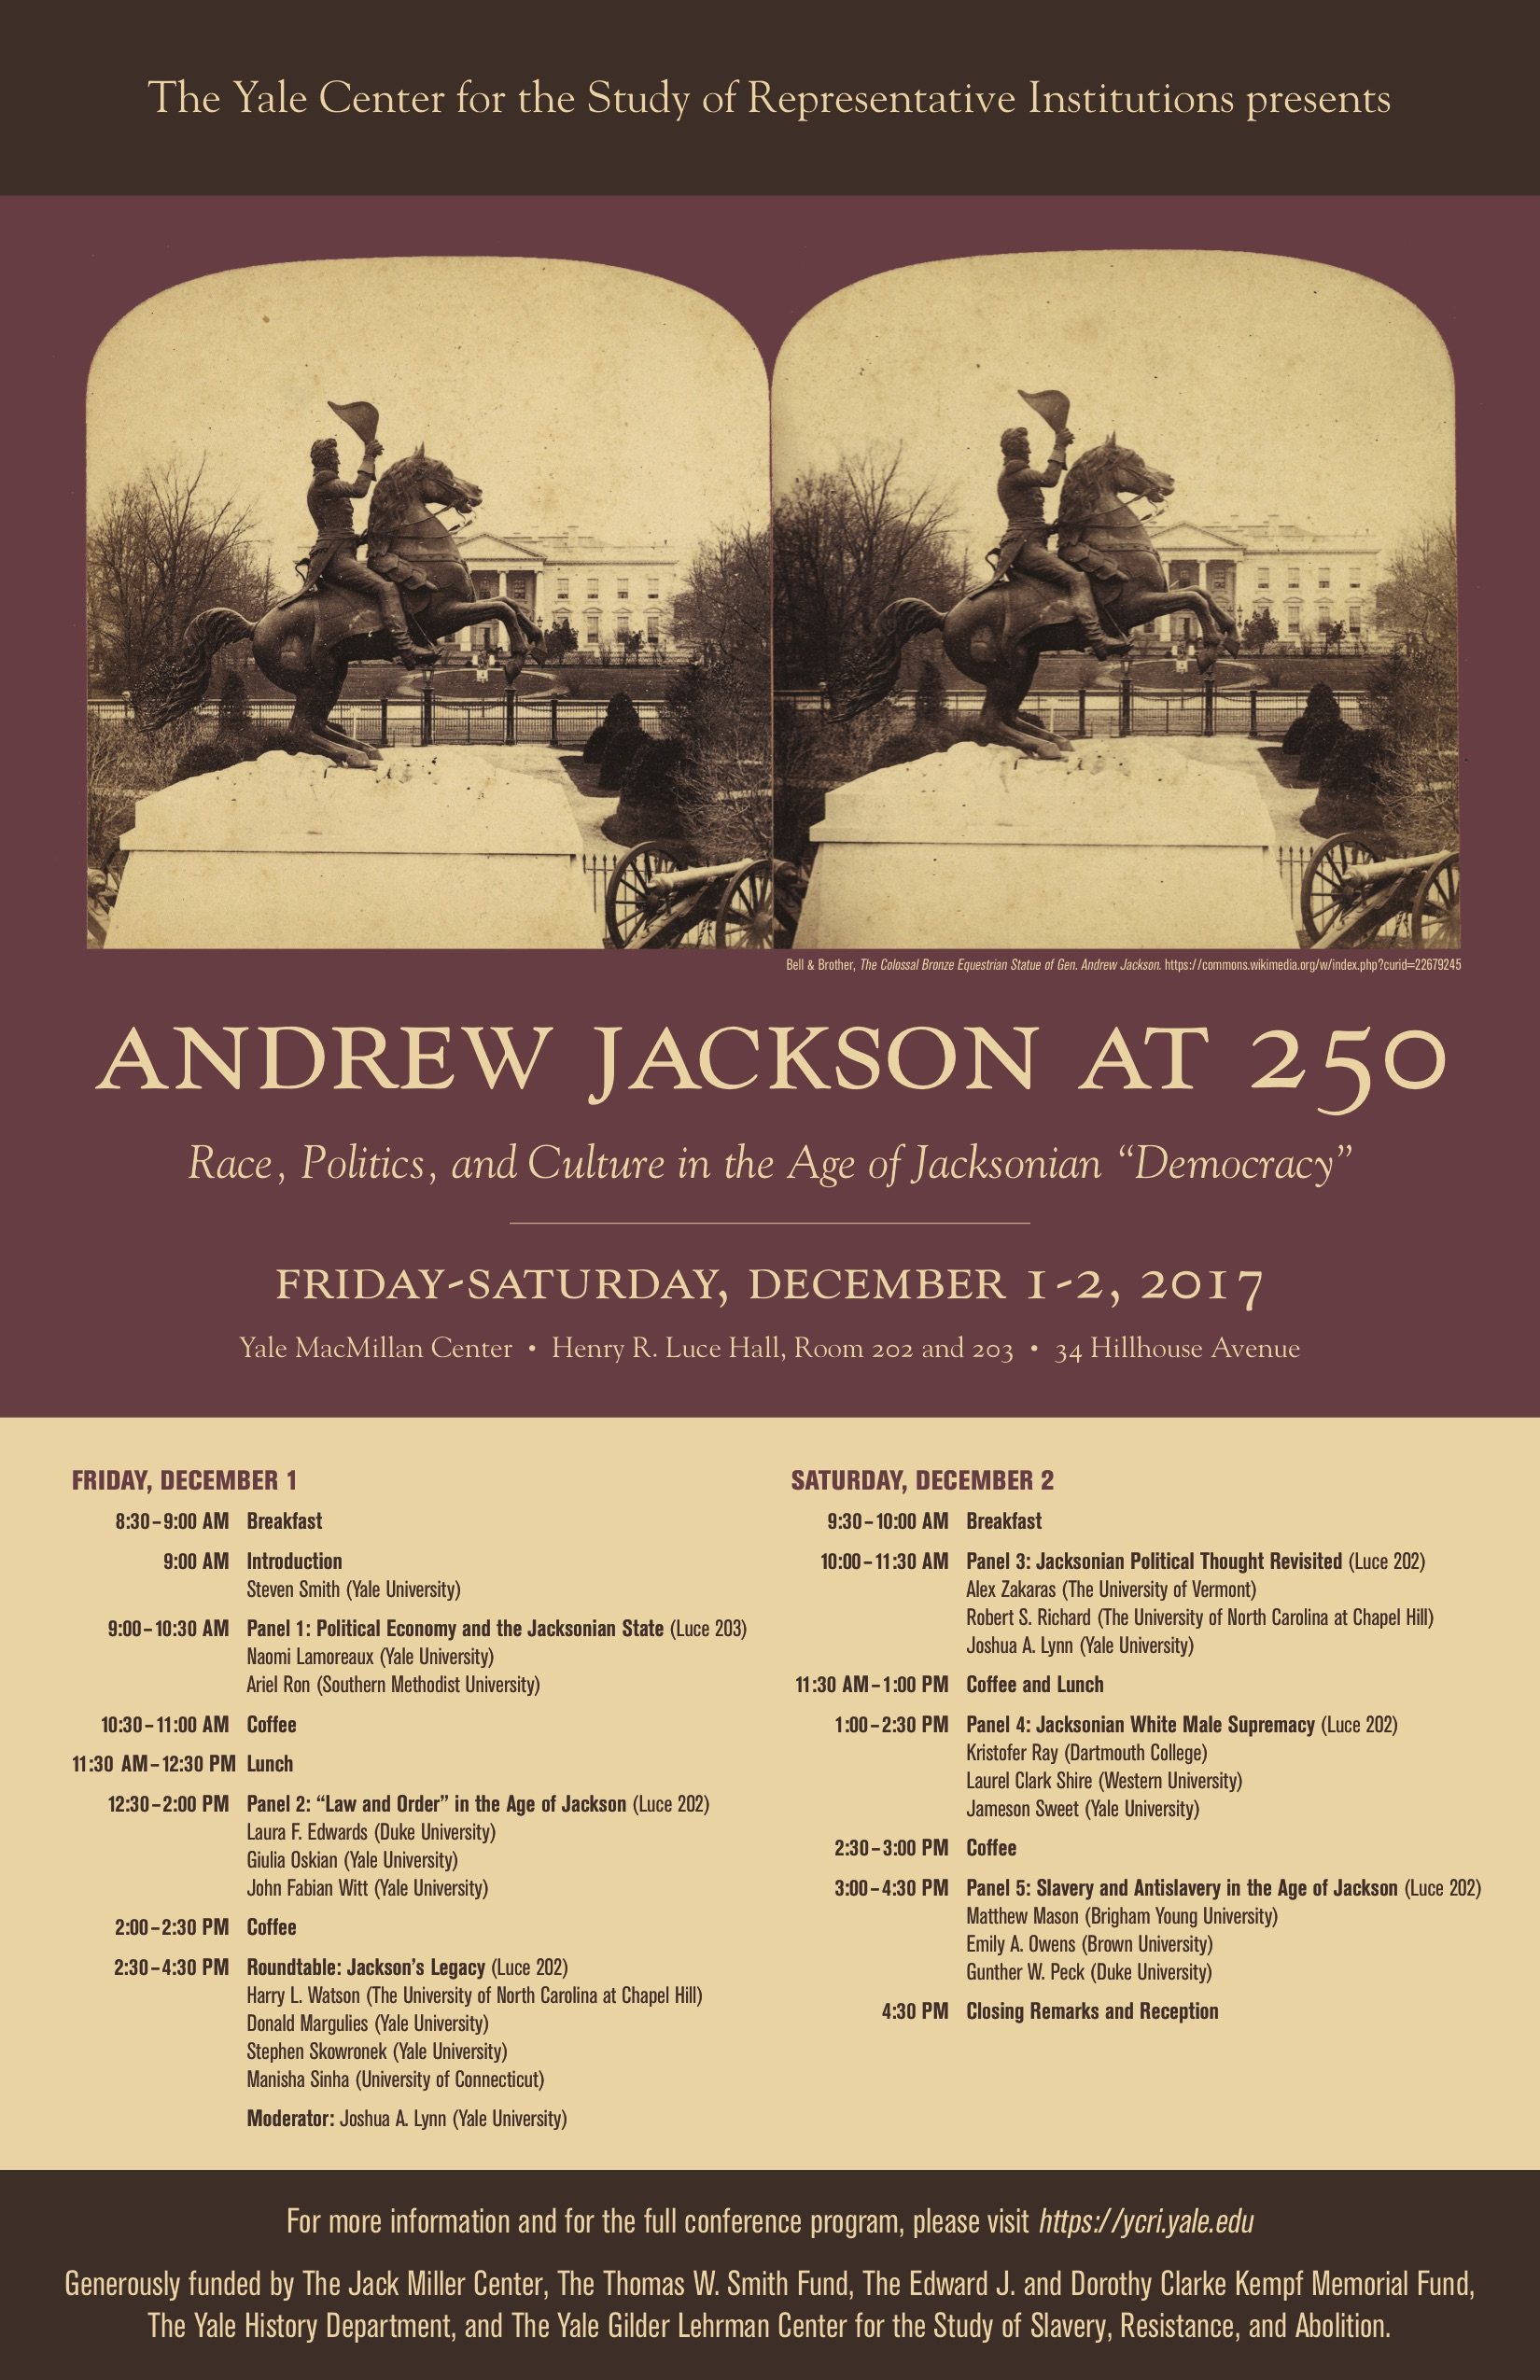 Andrew Jackson at 250: Yale Conference Flyer